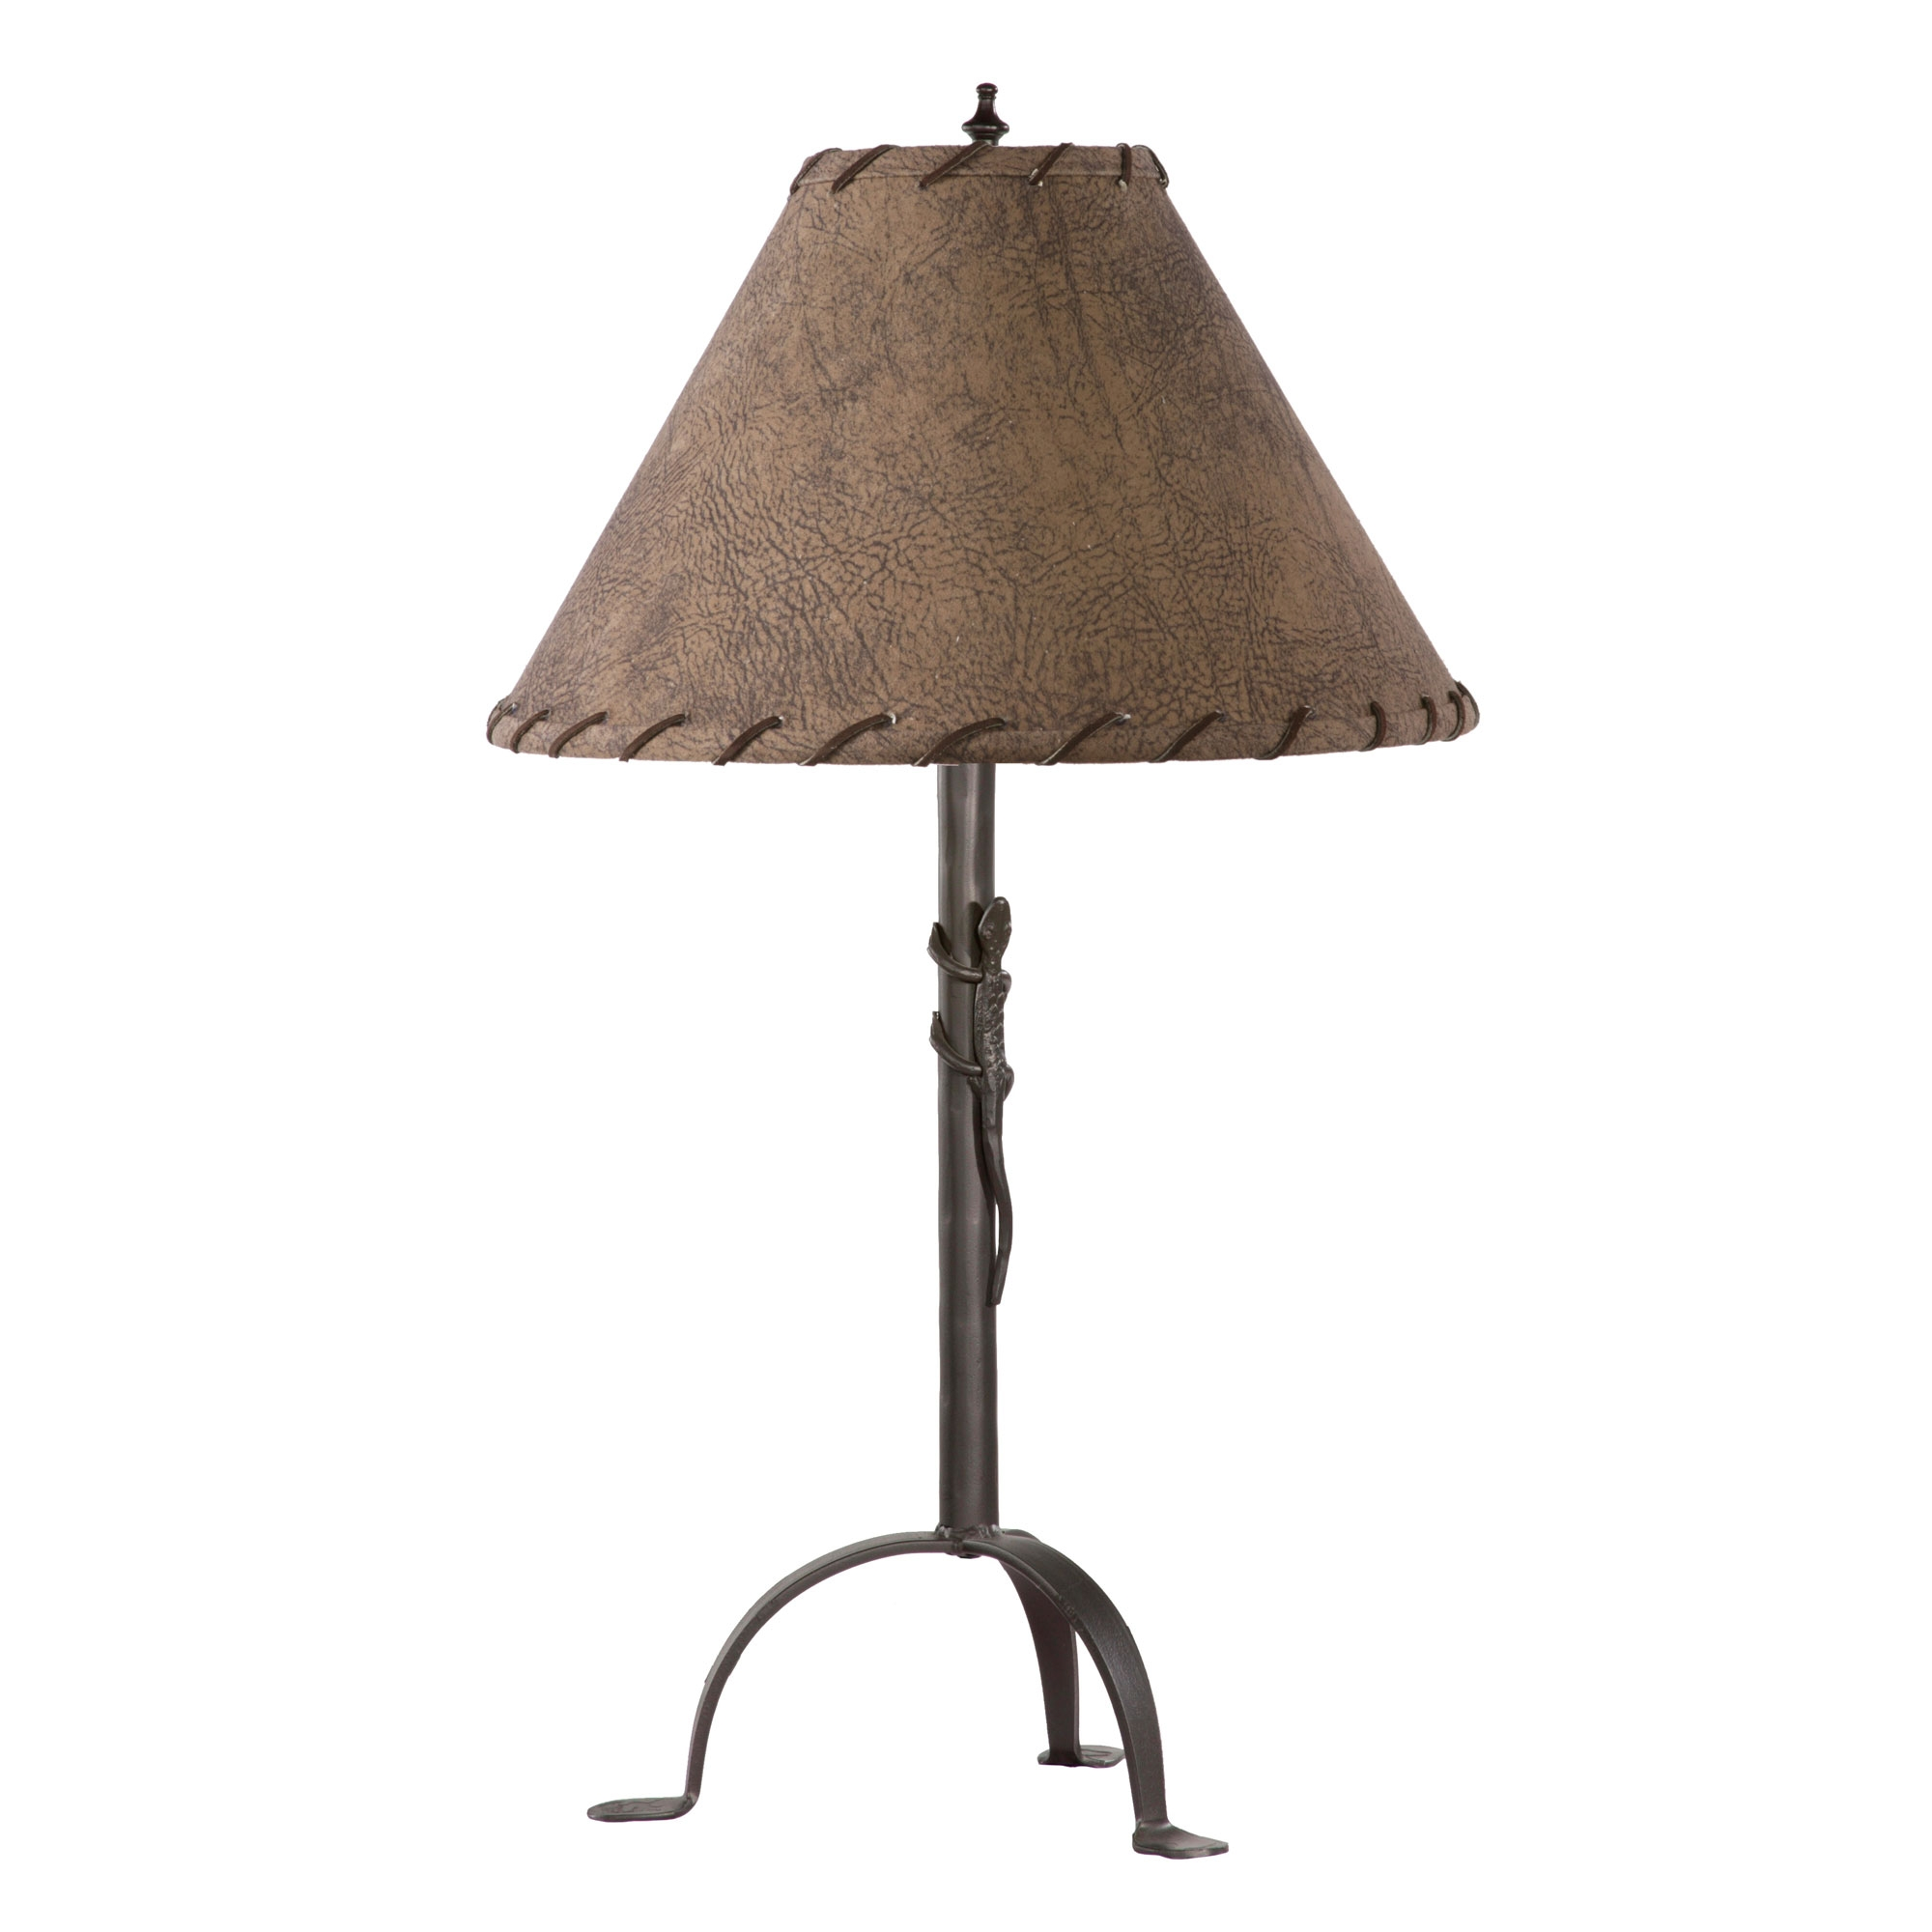 Wrought iron gecko table lamp by stone county ironworks gecko table lamp mozeypictures Gallery